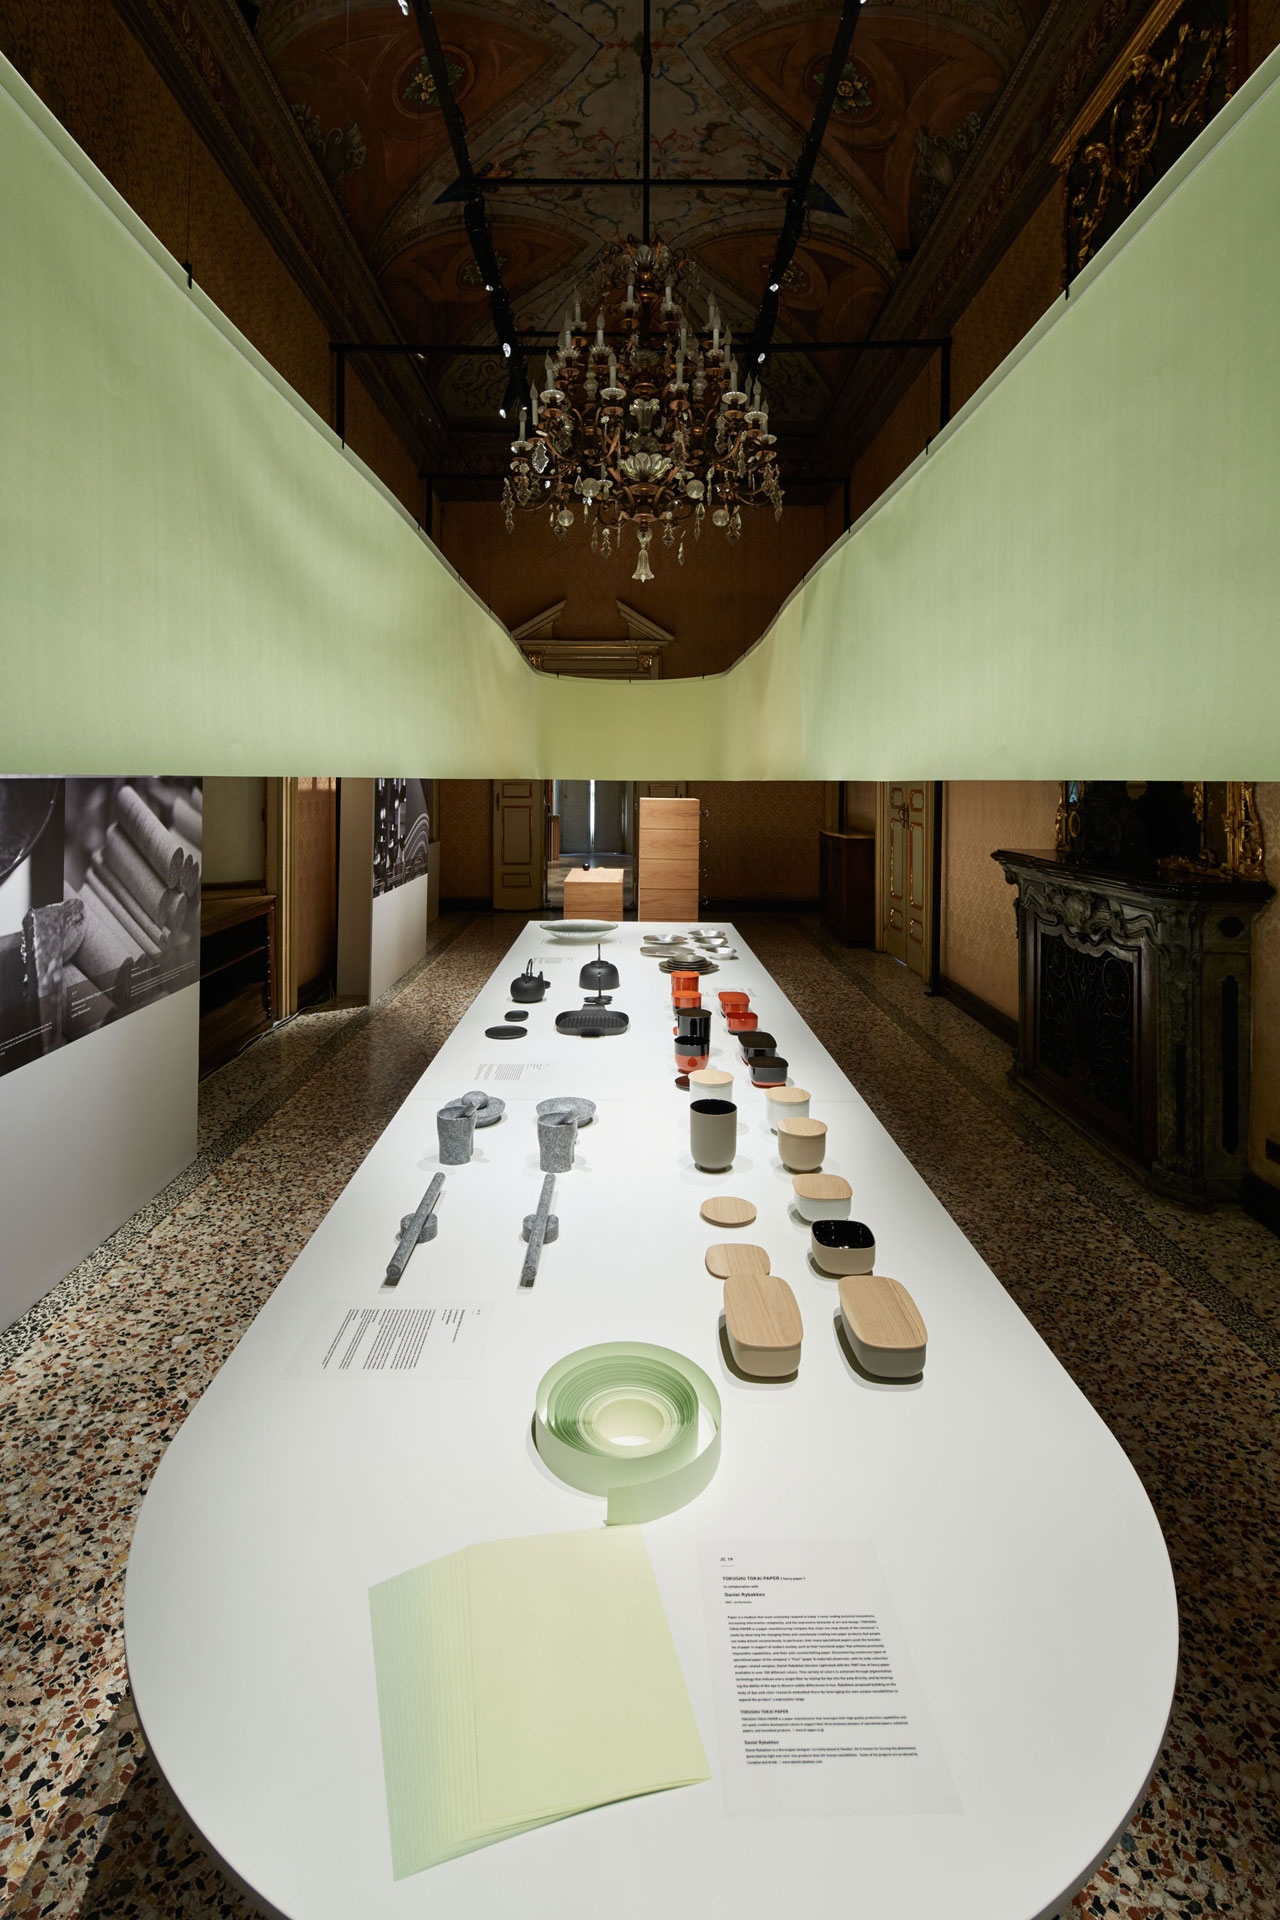 The exhibition of Japan Creative inside Palazzo Litta during Milan Design Week 2017.